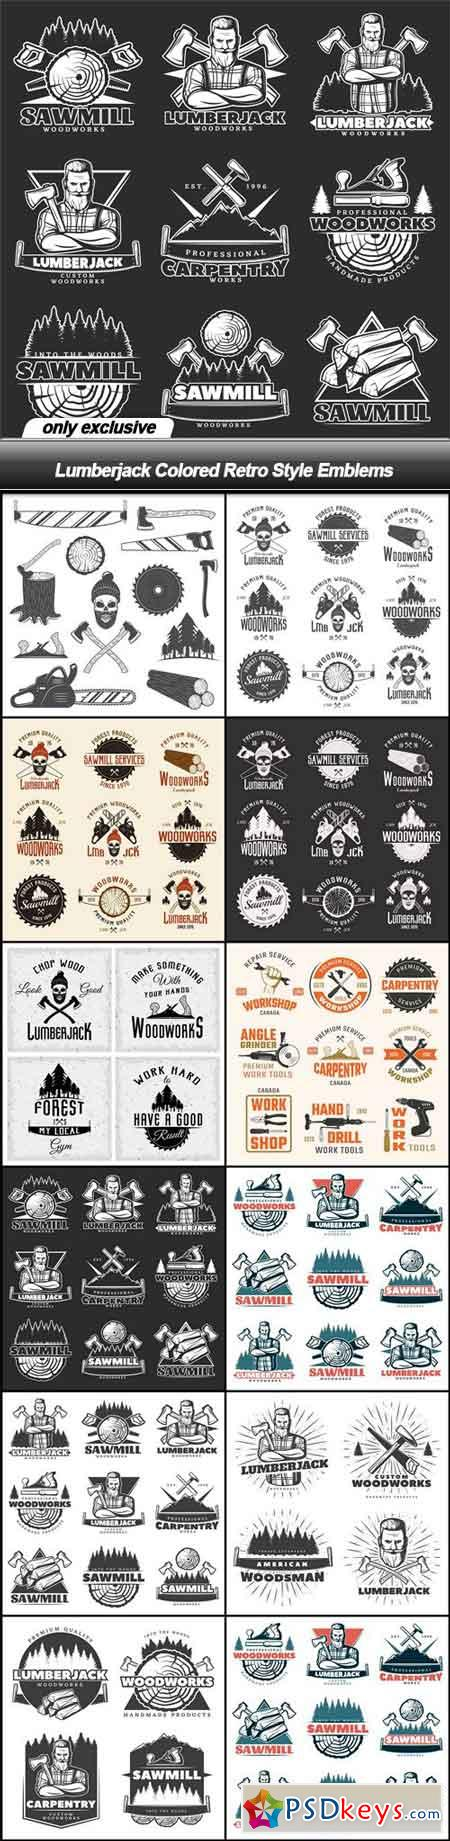 Lumberjack Colored Retro Style Emblems - 12 EPS